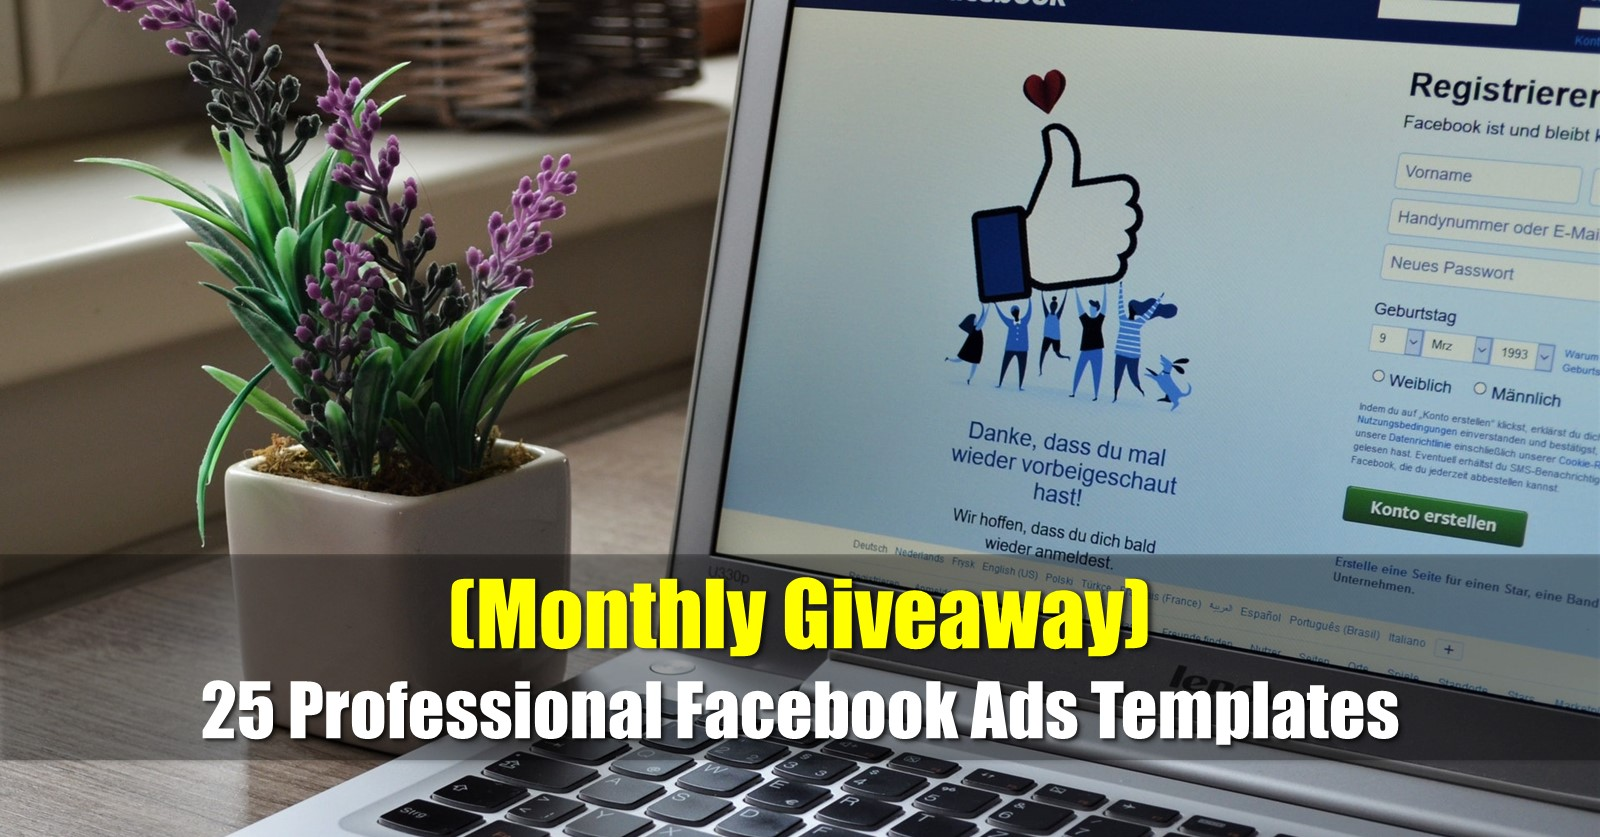 giveaway facebook ad templates